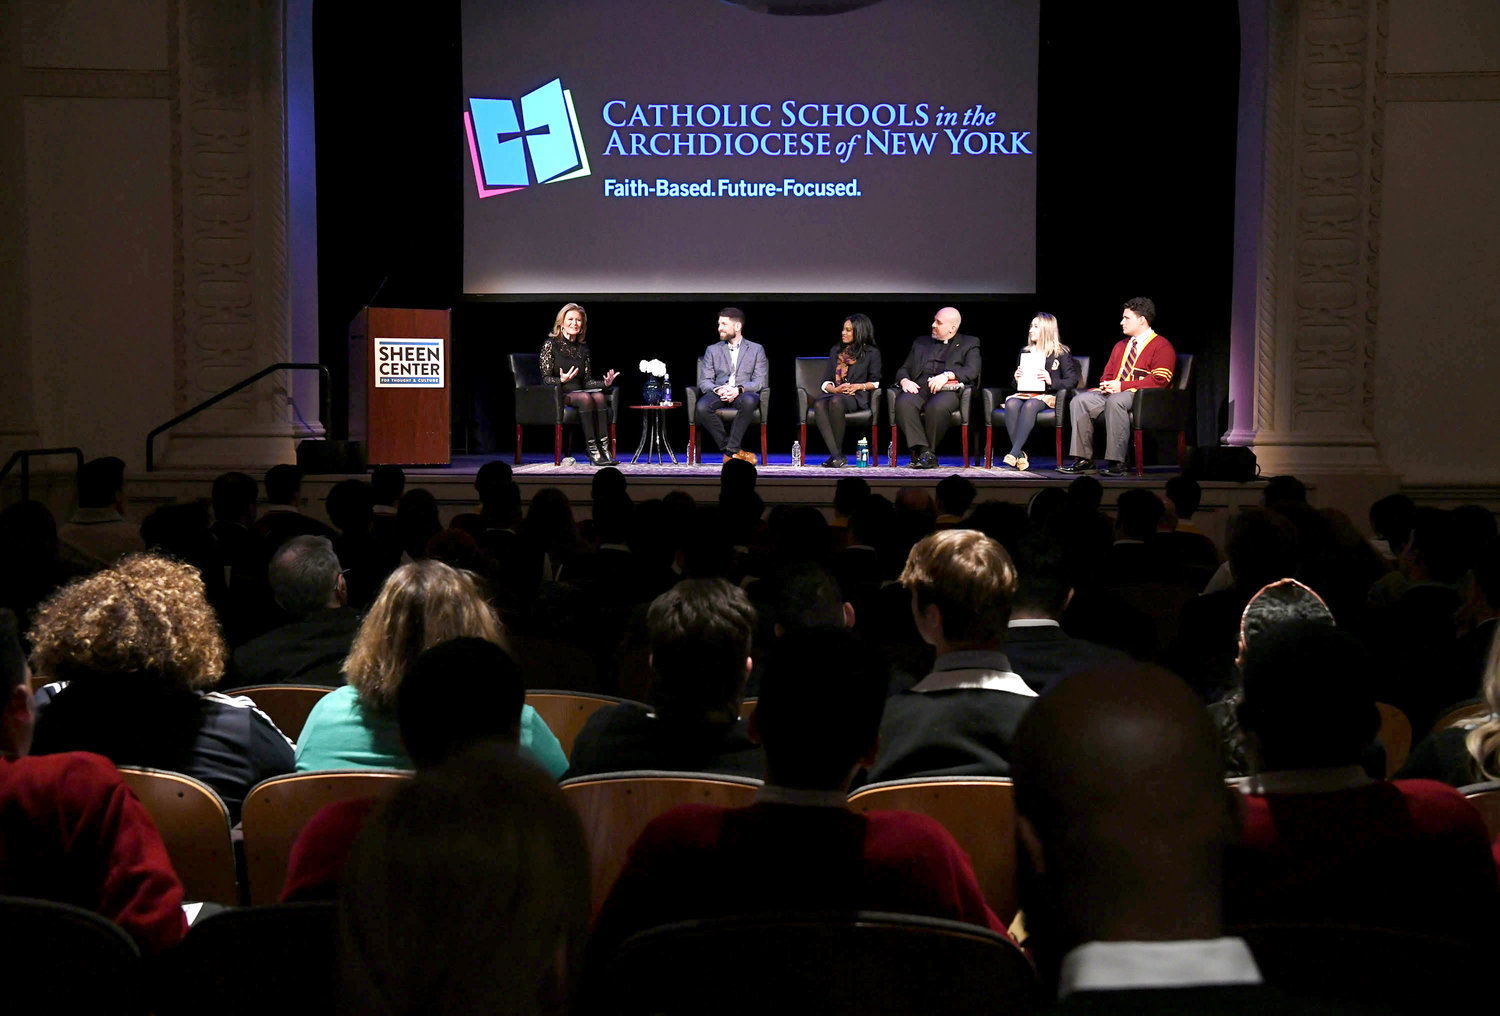 FUTURE-FOCUSED—On stage for the panel discussion were Monica Morales, moderator; Pete Burak, keynote speaker, and panelists Danielle M. Brown, Father Joseph Espaillat, and students Virginia Capellupo and Frank Scafuri.